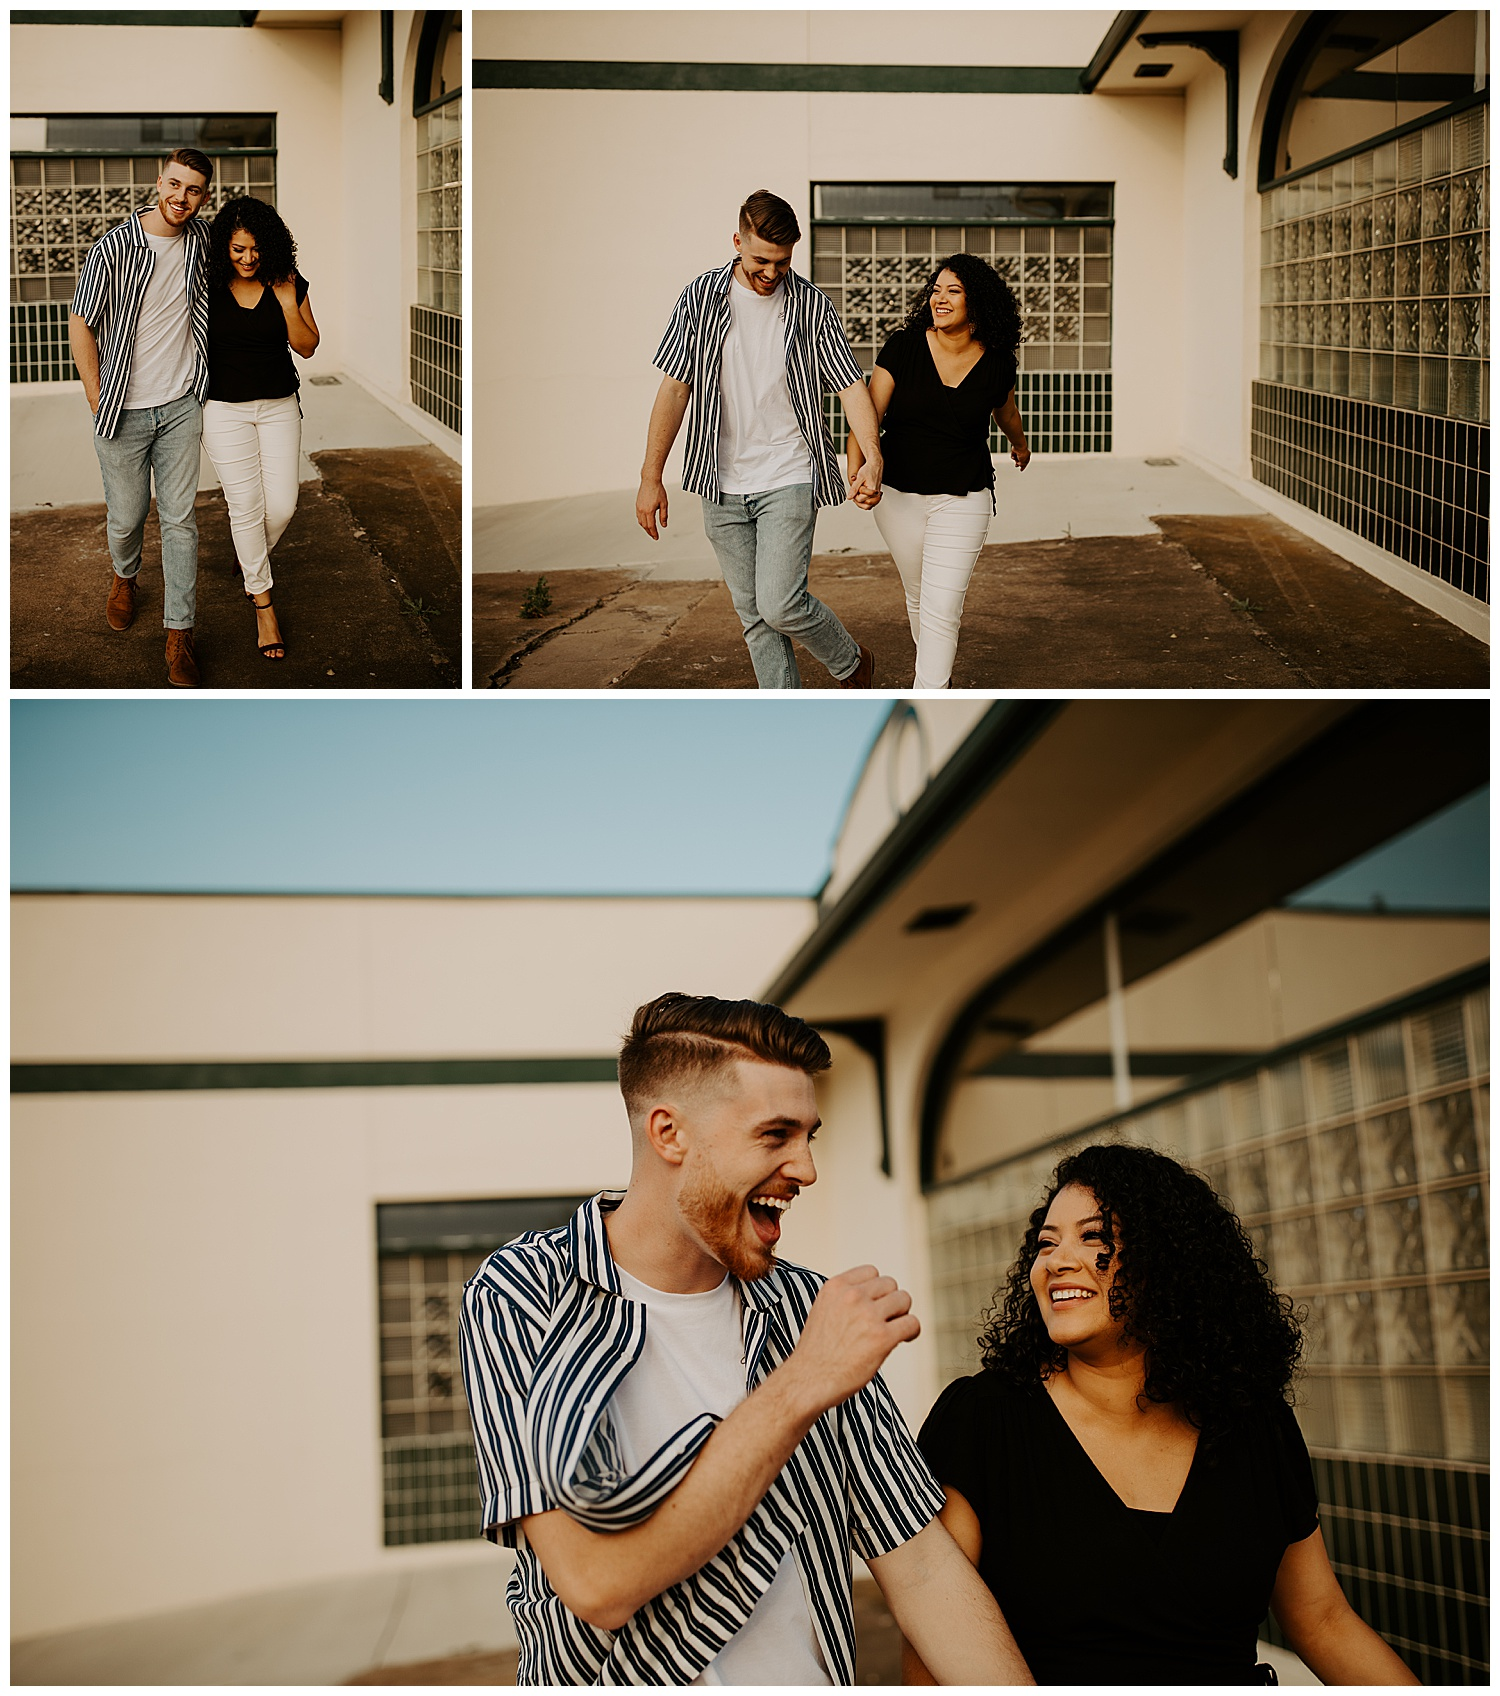 Laken-Mackenzie-Photography-Southside-Fort-Worth-Engagement-Session-Roselyn-Ryan-Engagement-Session02.jpg